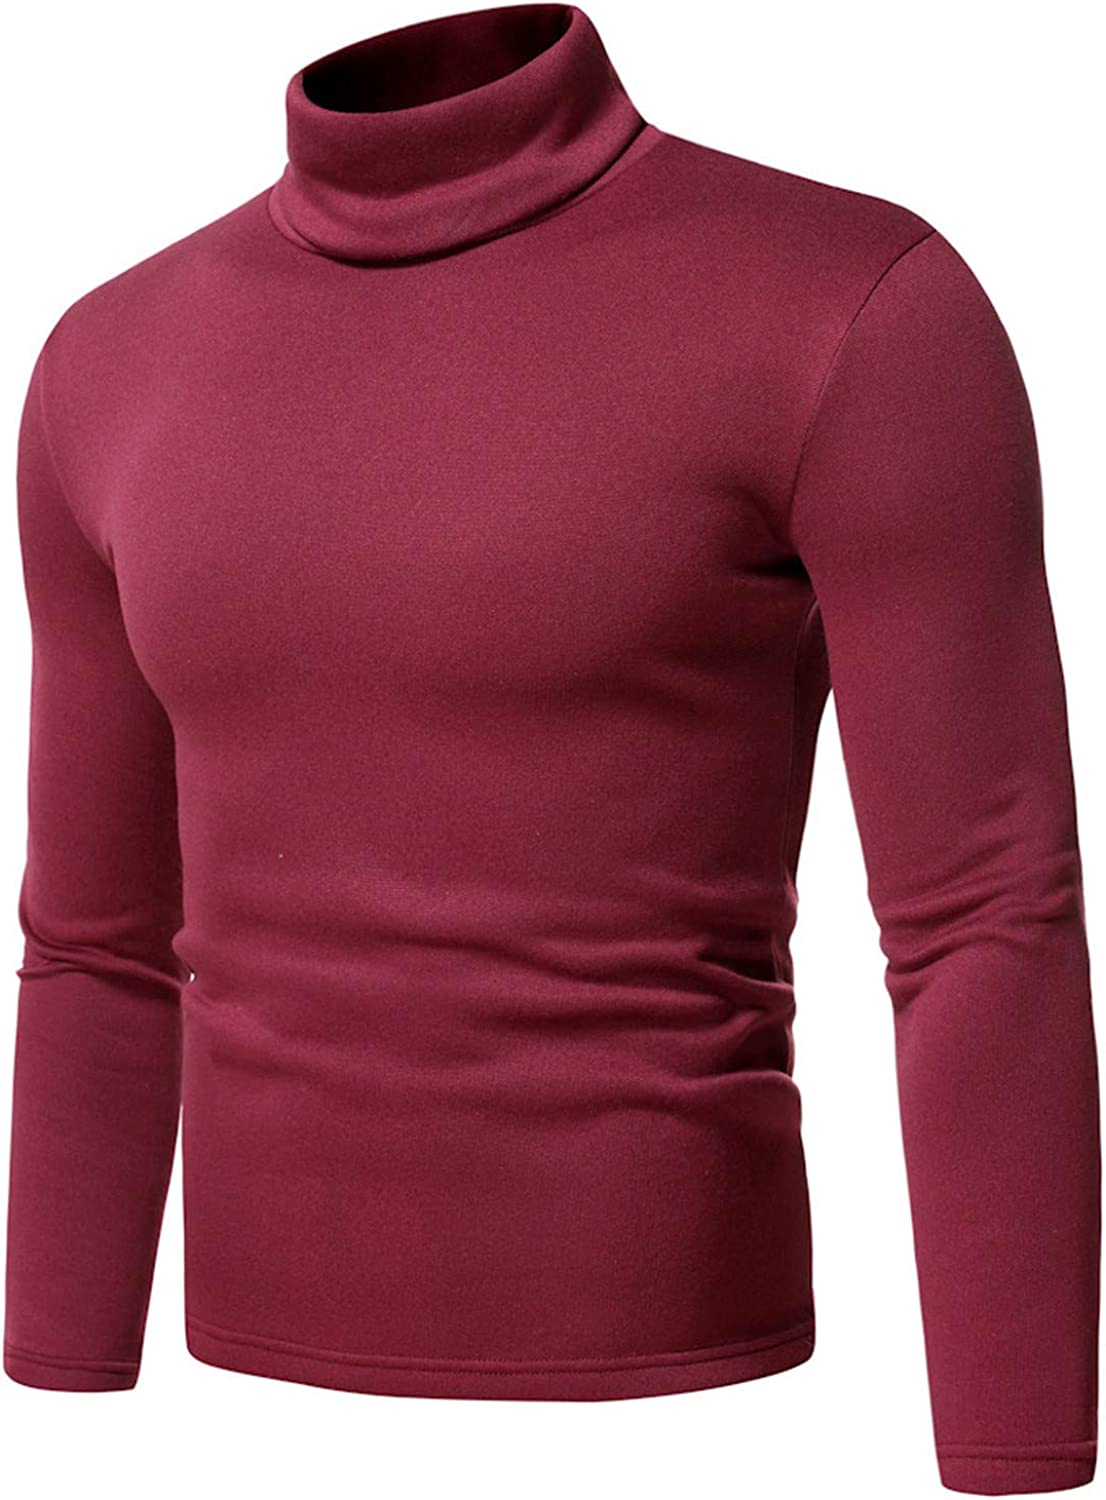 XXBR Turtleneck Pullover for Mens, 2021 Fall Elastic Cotton Slim-fit Solid Color High Neck Basic Tops Warm Undershirt